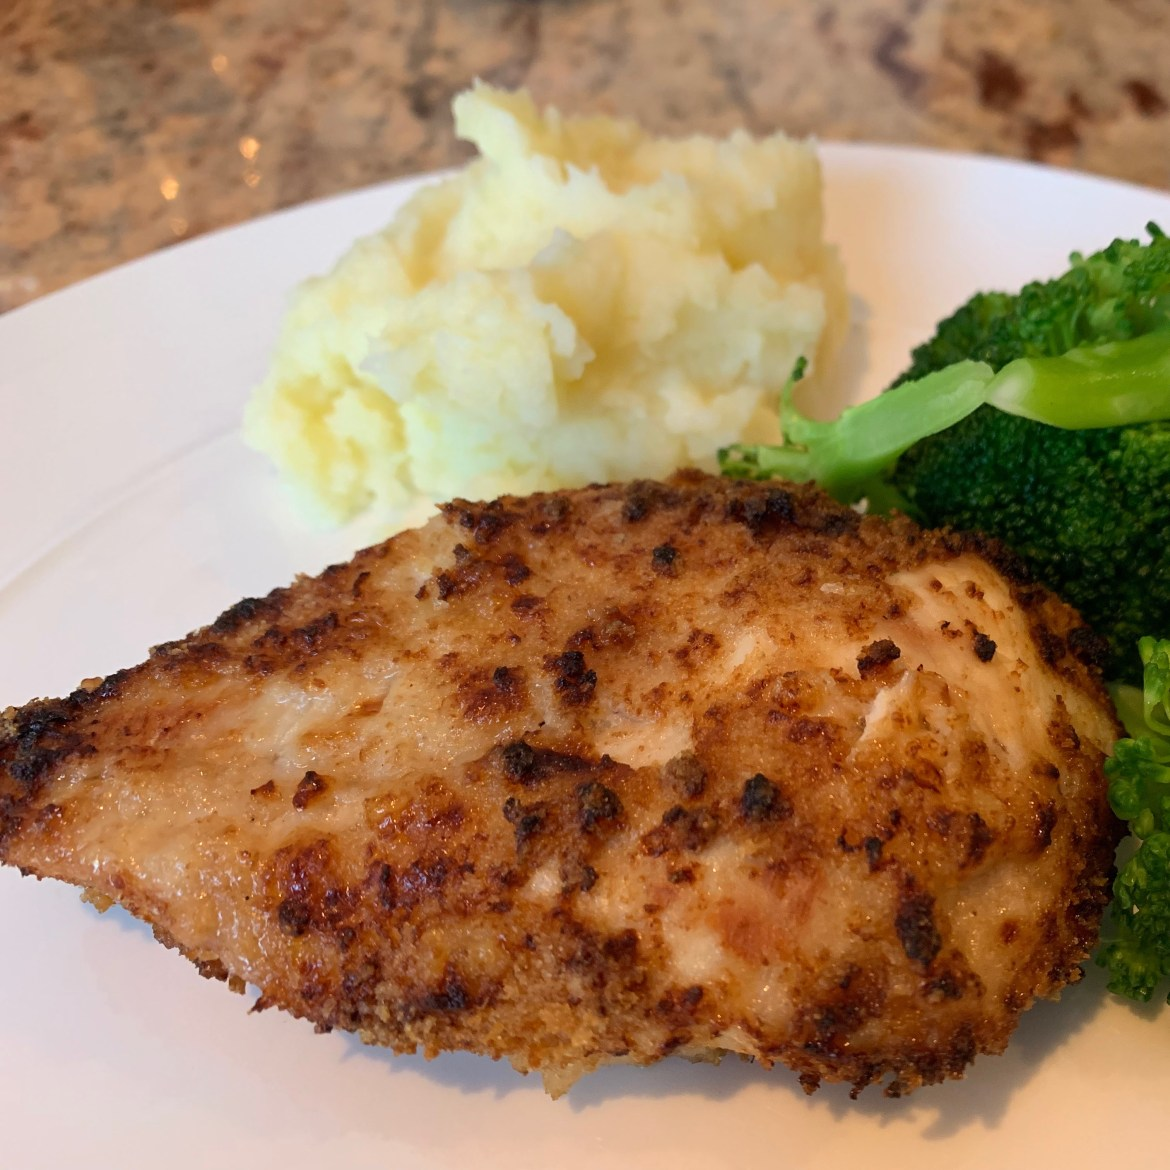 air fryer buttermilk ranch chicken on a dish with mashed potatoes and broccoli